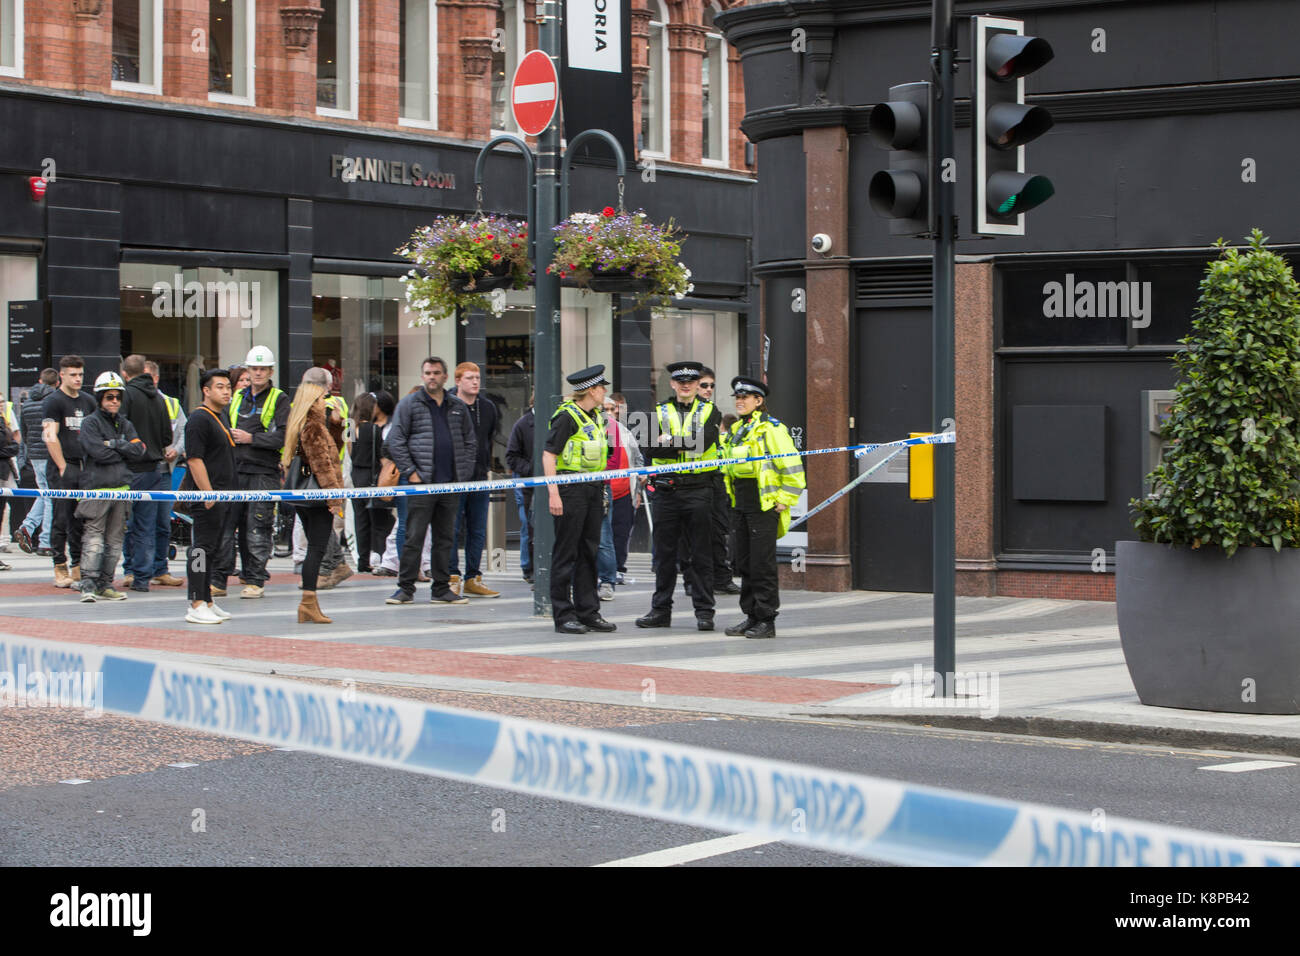 Leeds, UK. 20th Sep, 2017. The Bomb squad were called to attend a suspect package found in Leeds city Market on - Stock Image